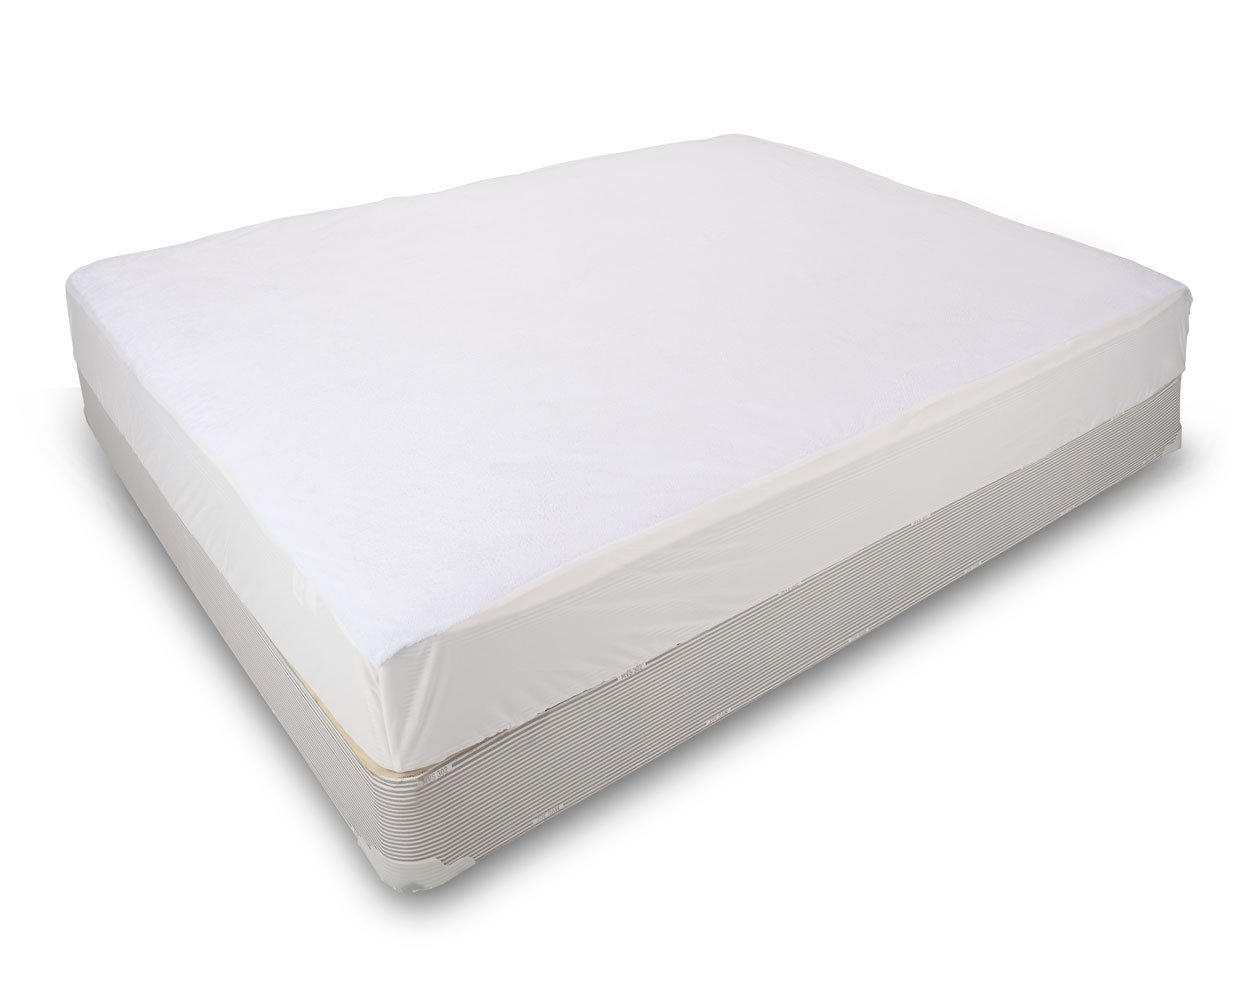 Mattress Bed Bug Protector Simple Elegance Zippered